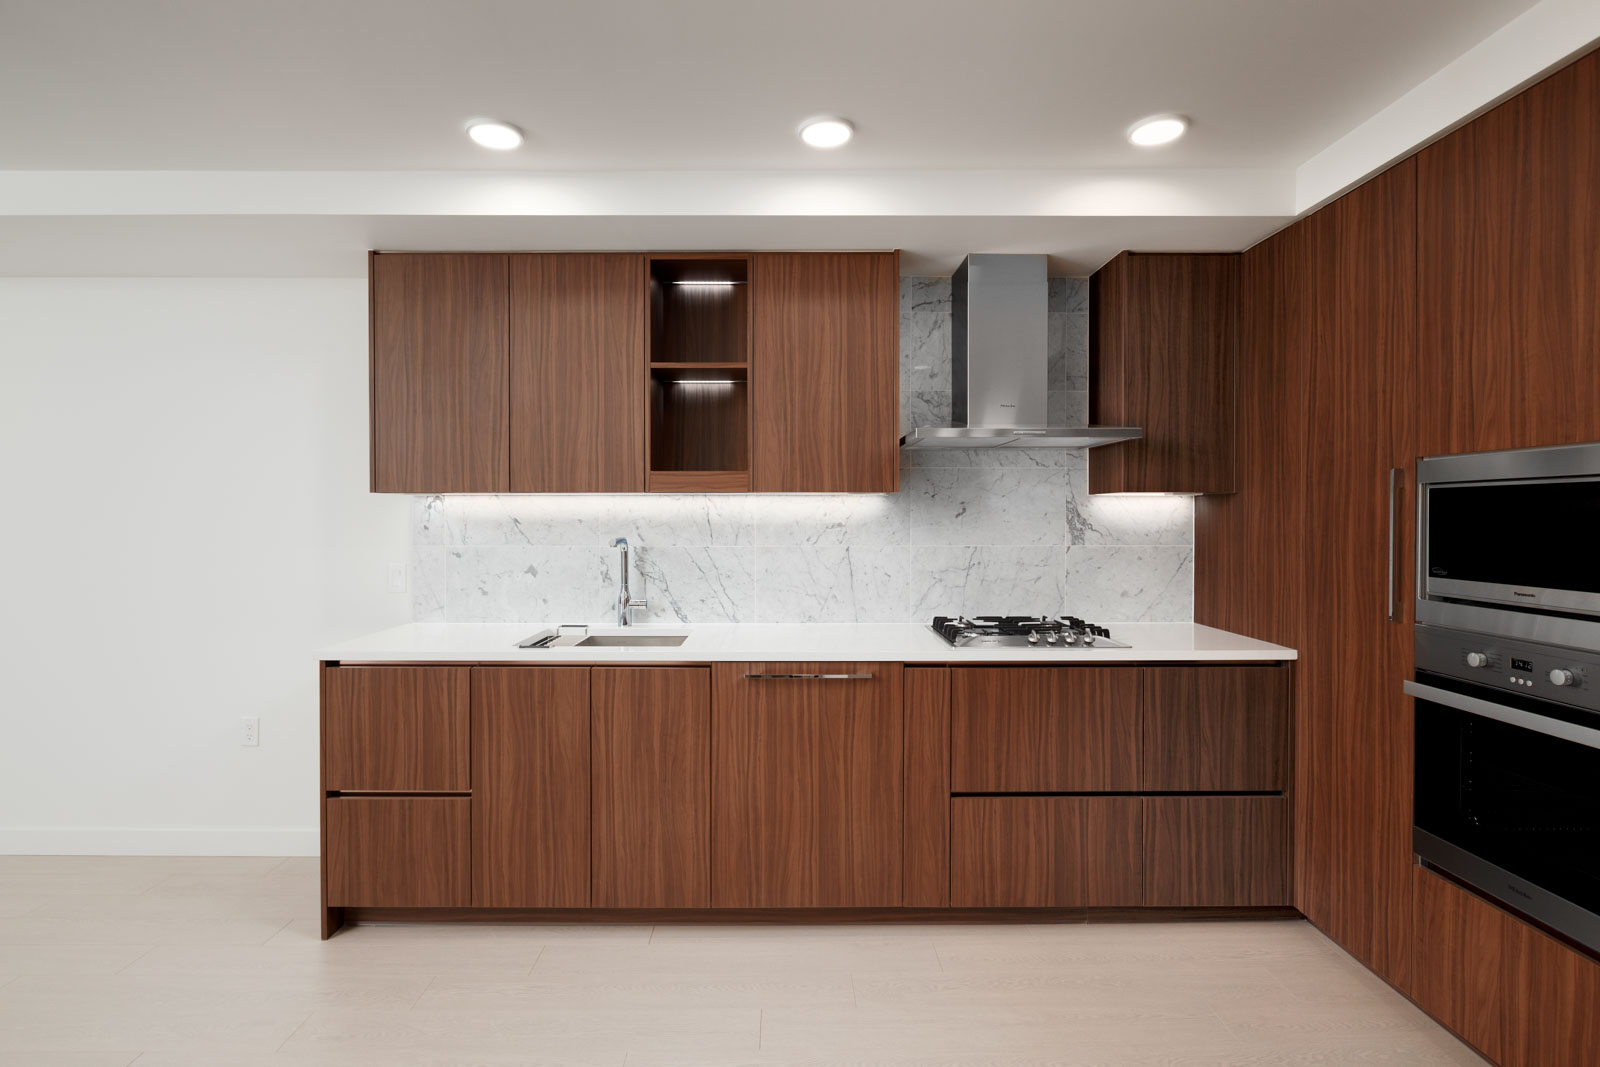 Kitchen with stainless steel appliances in luxury Vancouver rental condo.